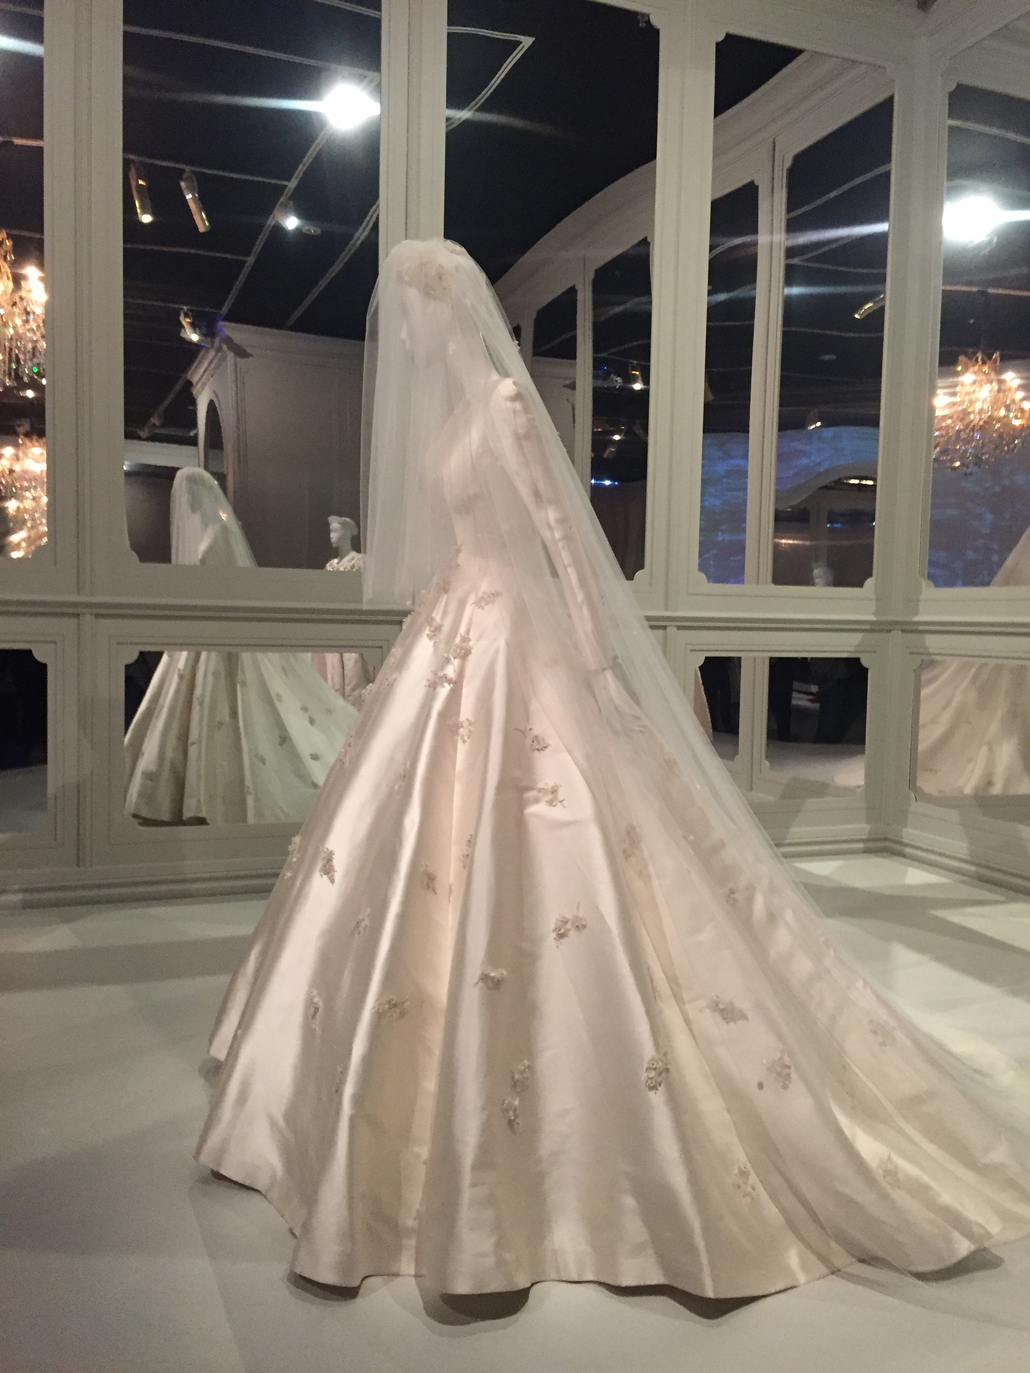 Dior 70 Years Of Haute Couture Fashion Fairytale At Ngv The